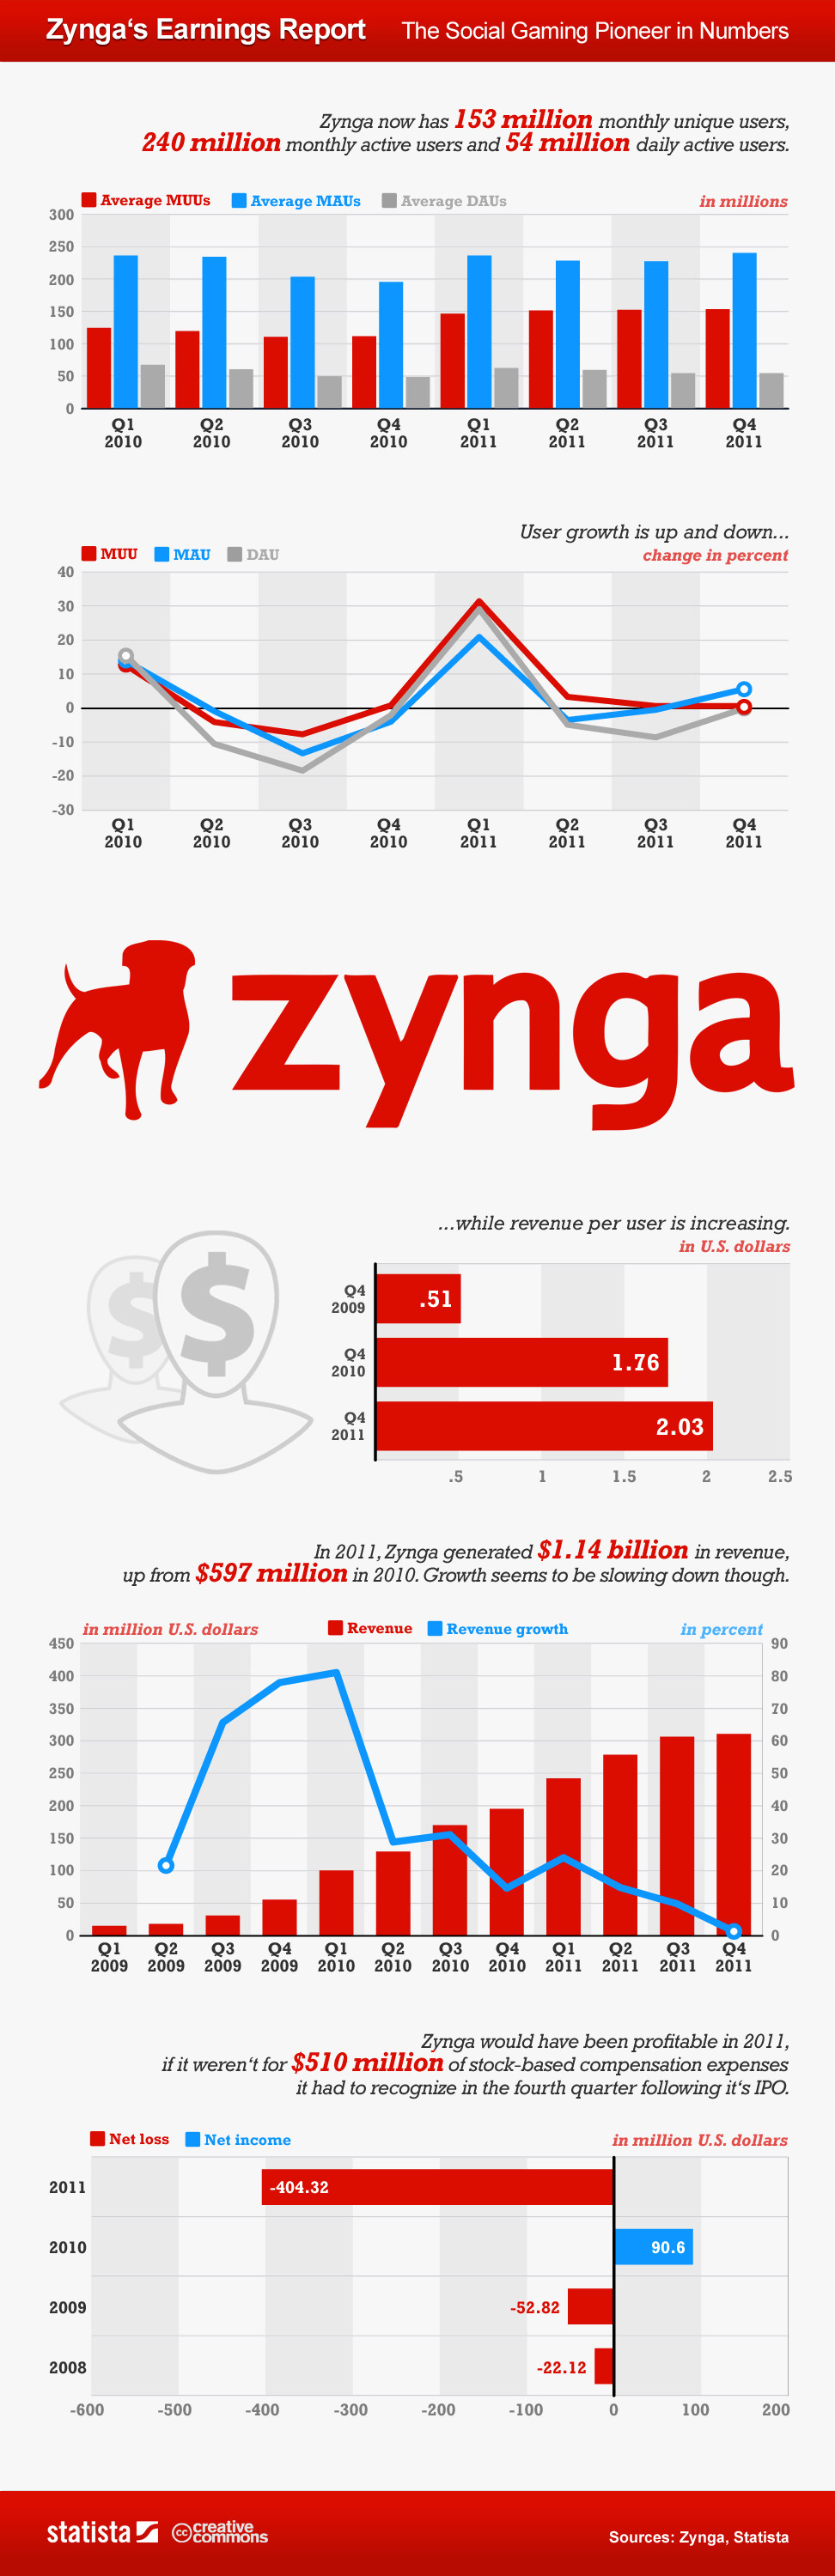 Zynga's Earnings Social Gaming Revenue by the Numbers